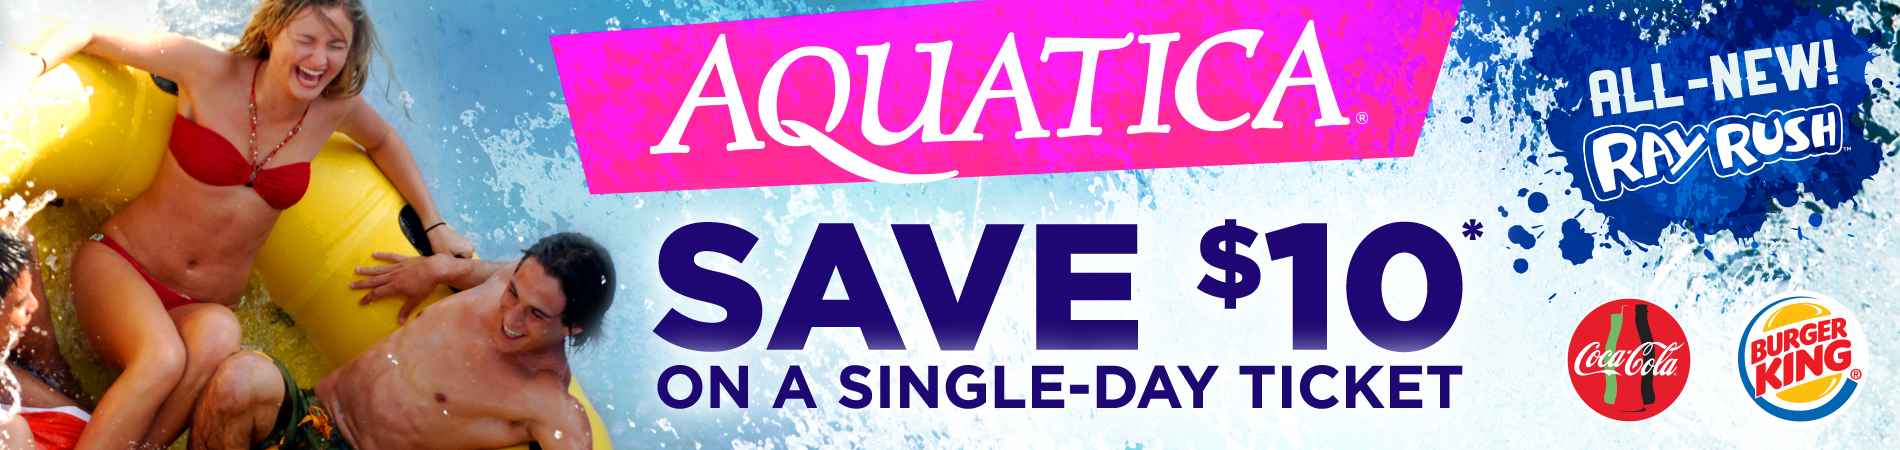 Save $10 on a single day ticket